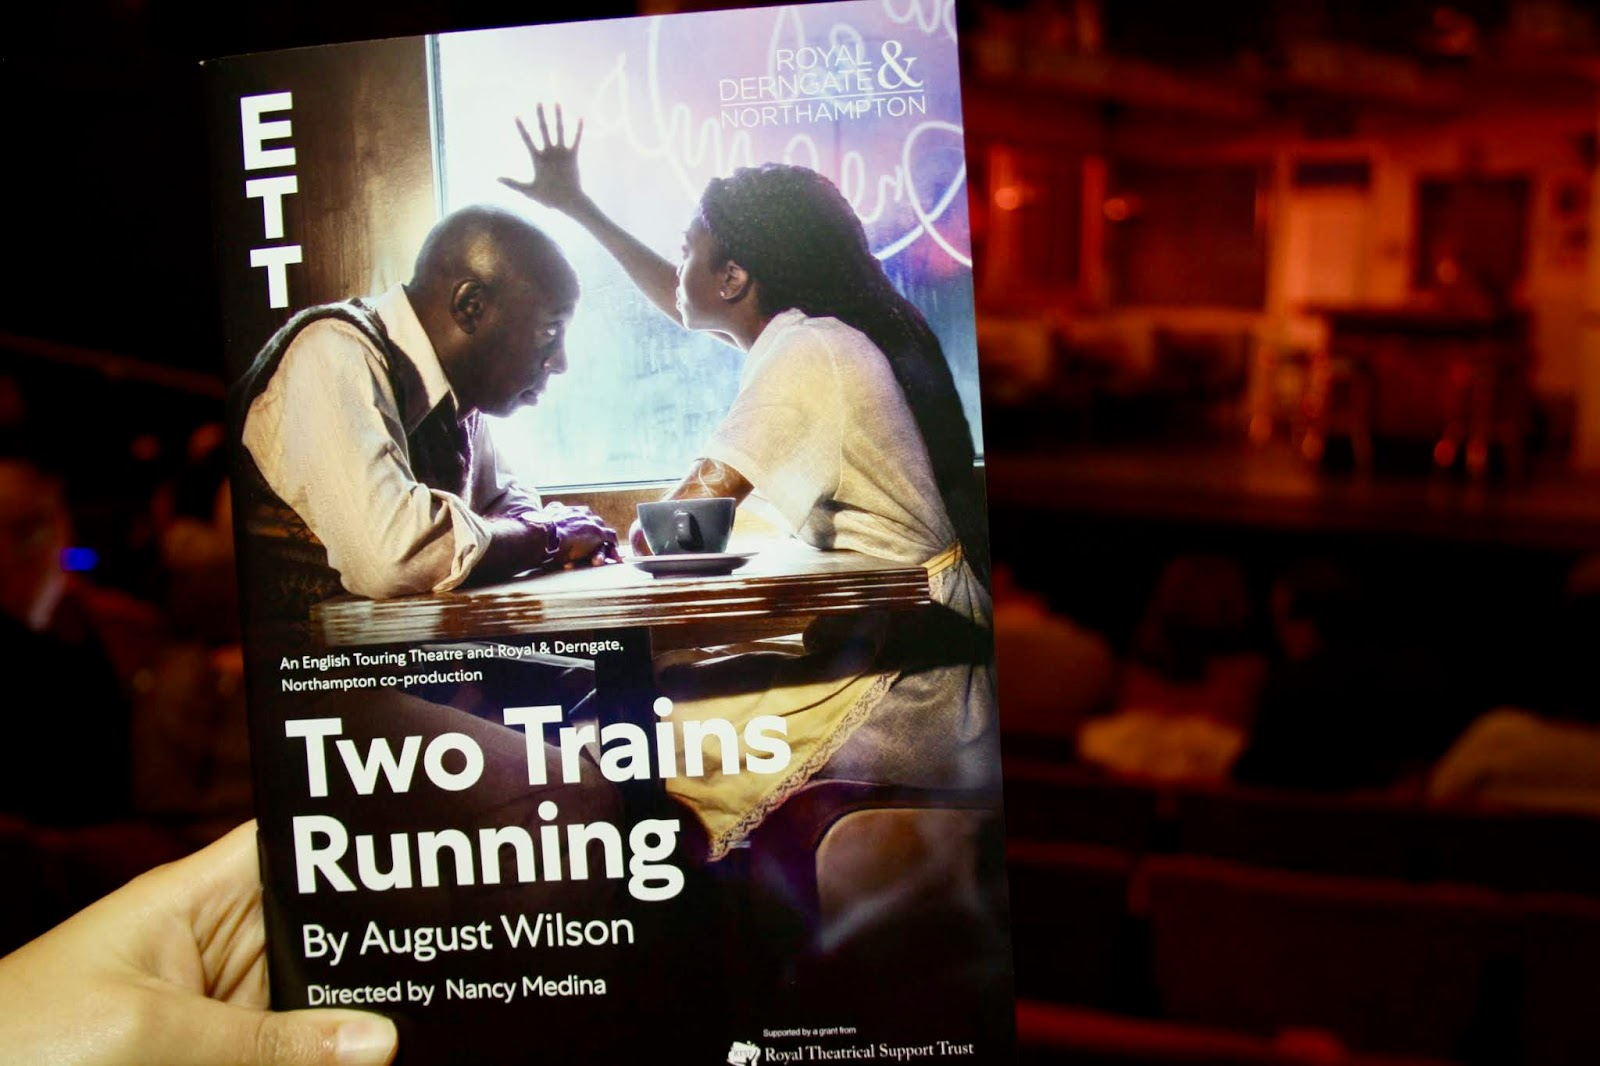 Two Trains Running Royal Derngate and Northampton review play